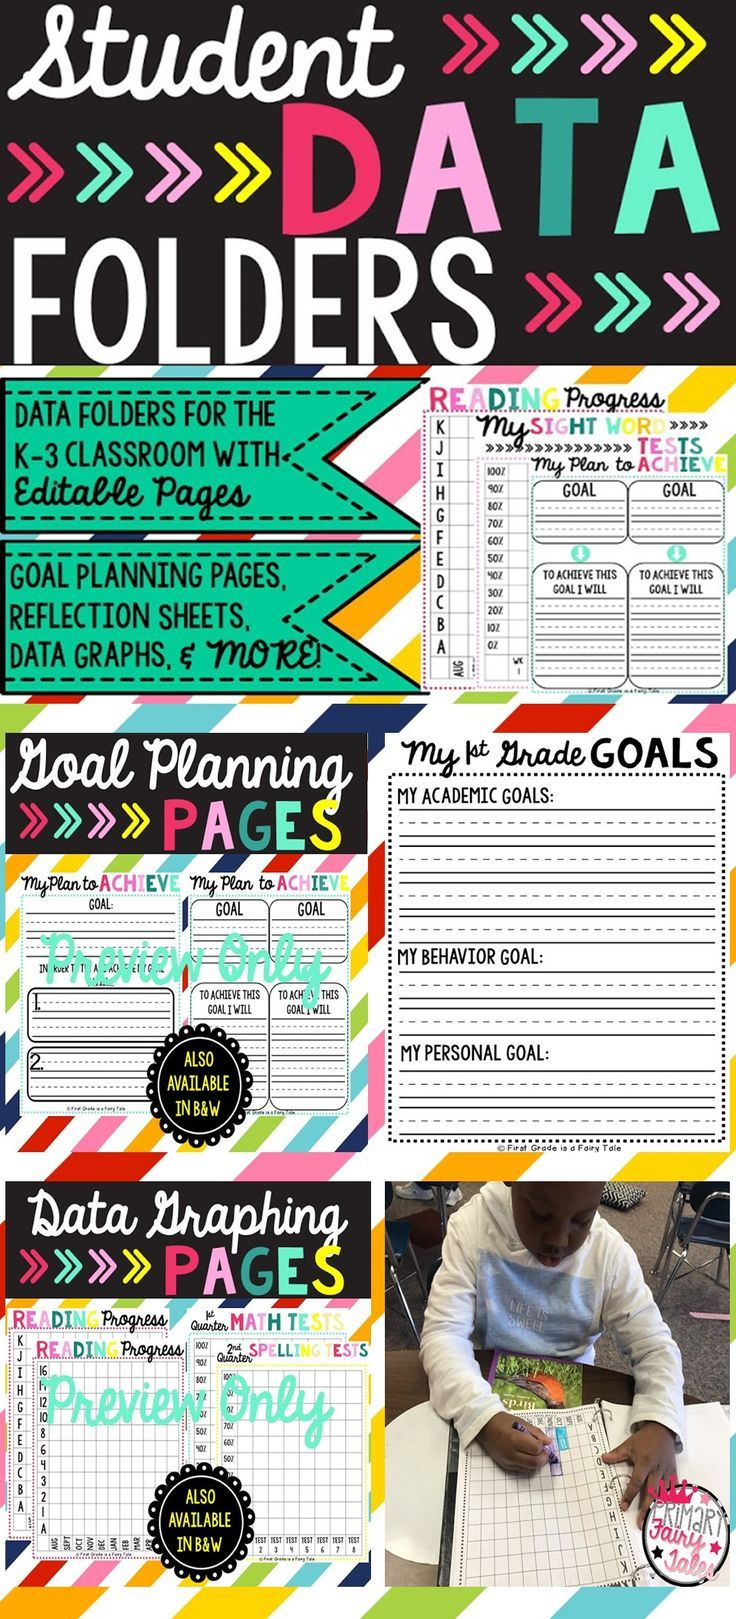 Have your students take charge of their learning by using student data binders. With this data binder students can set goals, come up with a plan to achieve their goal, and track their progress towards their goal(s) in a kid friendly way.